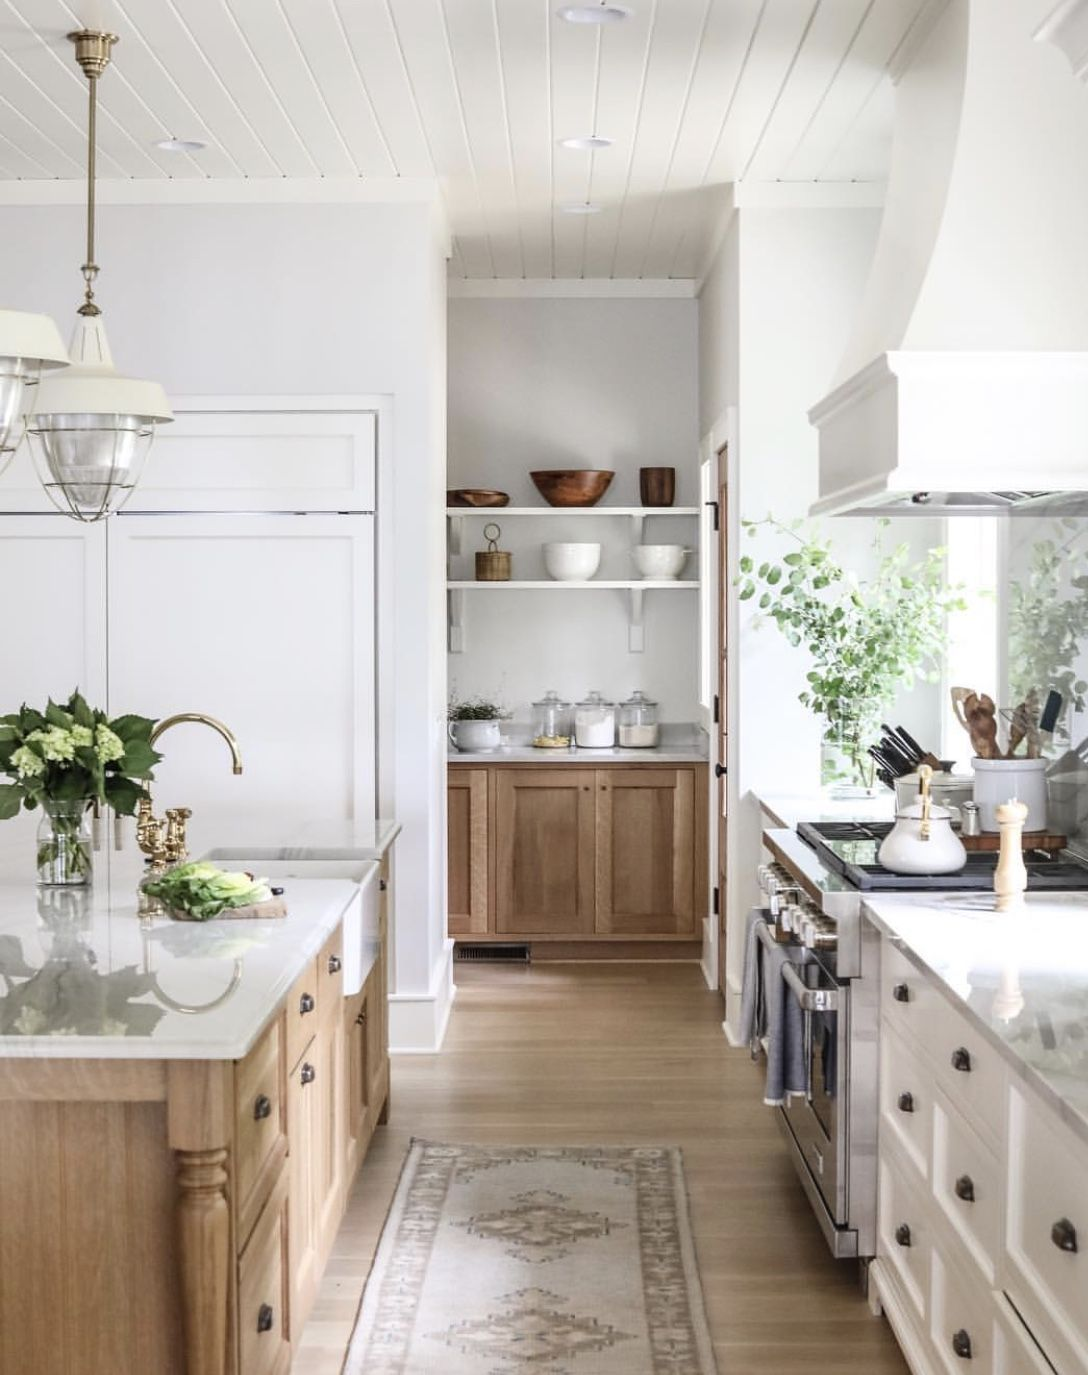 Trend We Re Loving Two Toned Kitchens Farmhouse Living White Cabinets Natural Wood Island Home Decor Kitchen Kitchen Interior Interior Design Kitchen